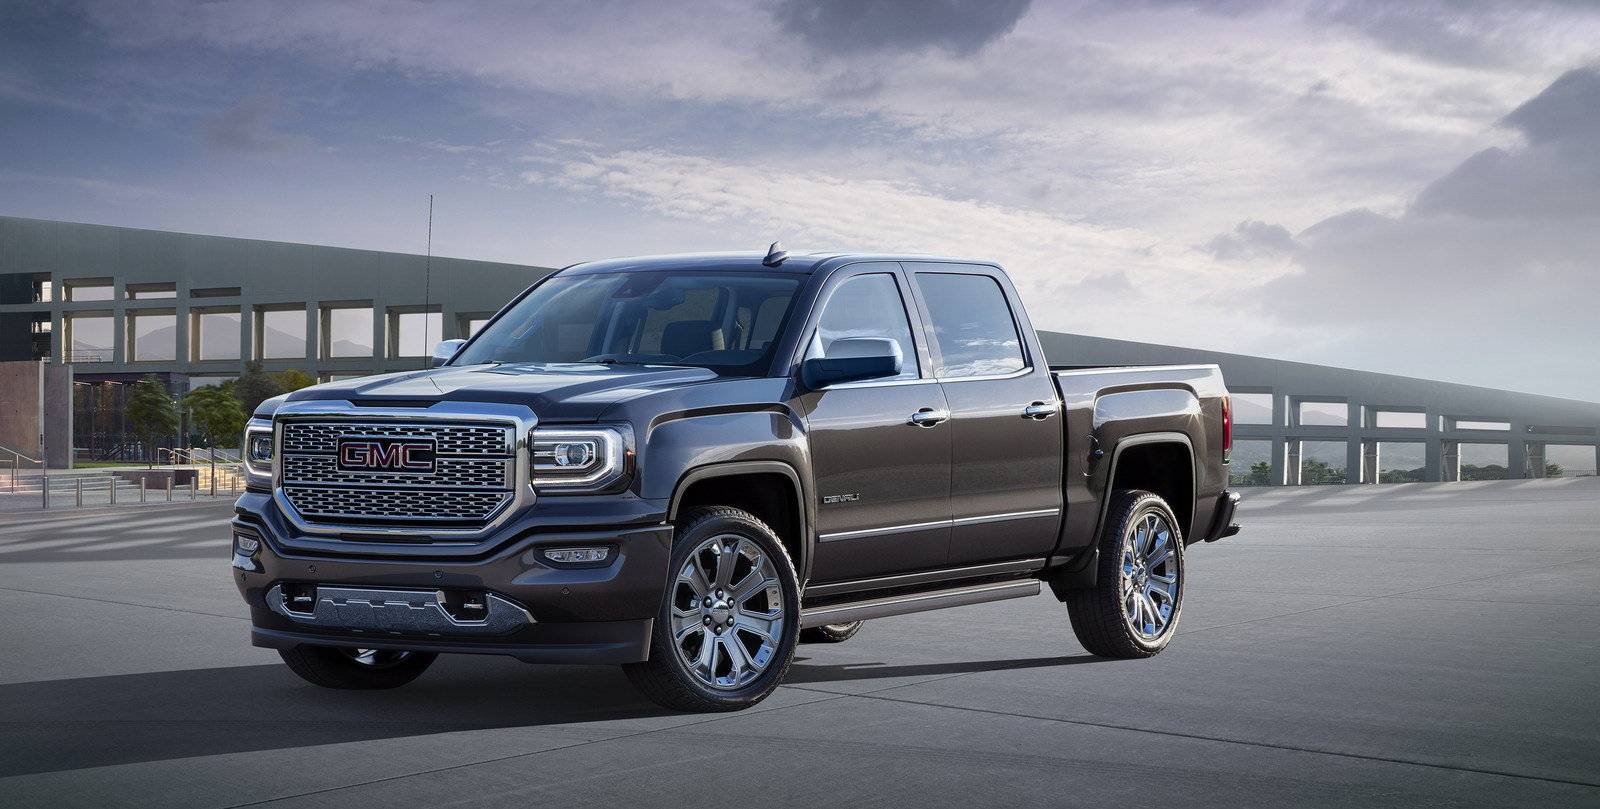 2017 gmc sierra denali ultimate picture 655877 truck review top speed. Black Bedroom Furniture Sets. Home Design Ideas